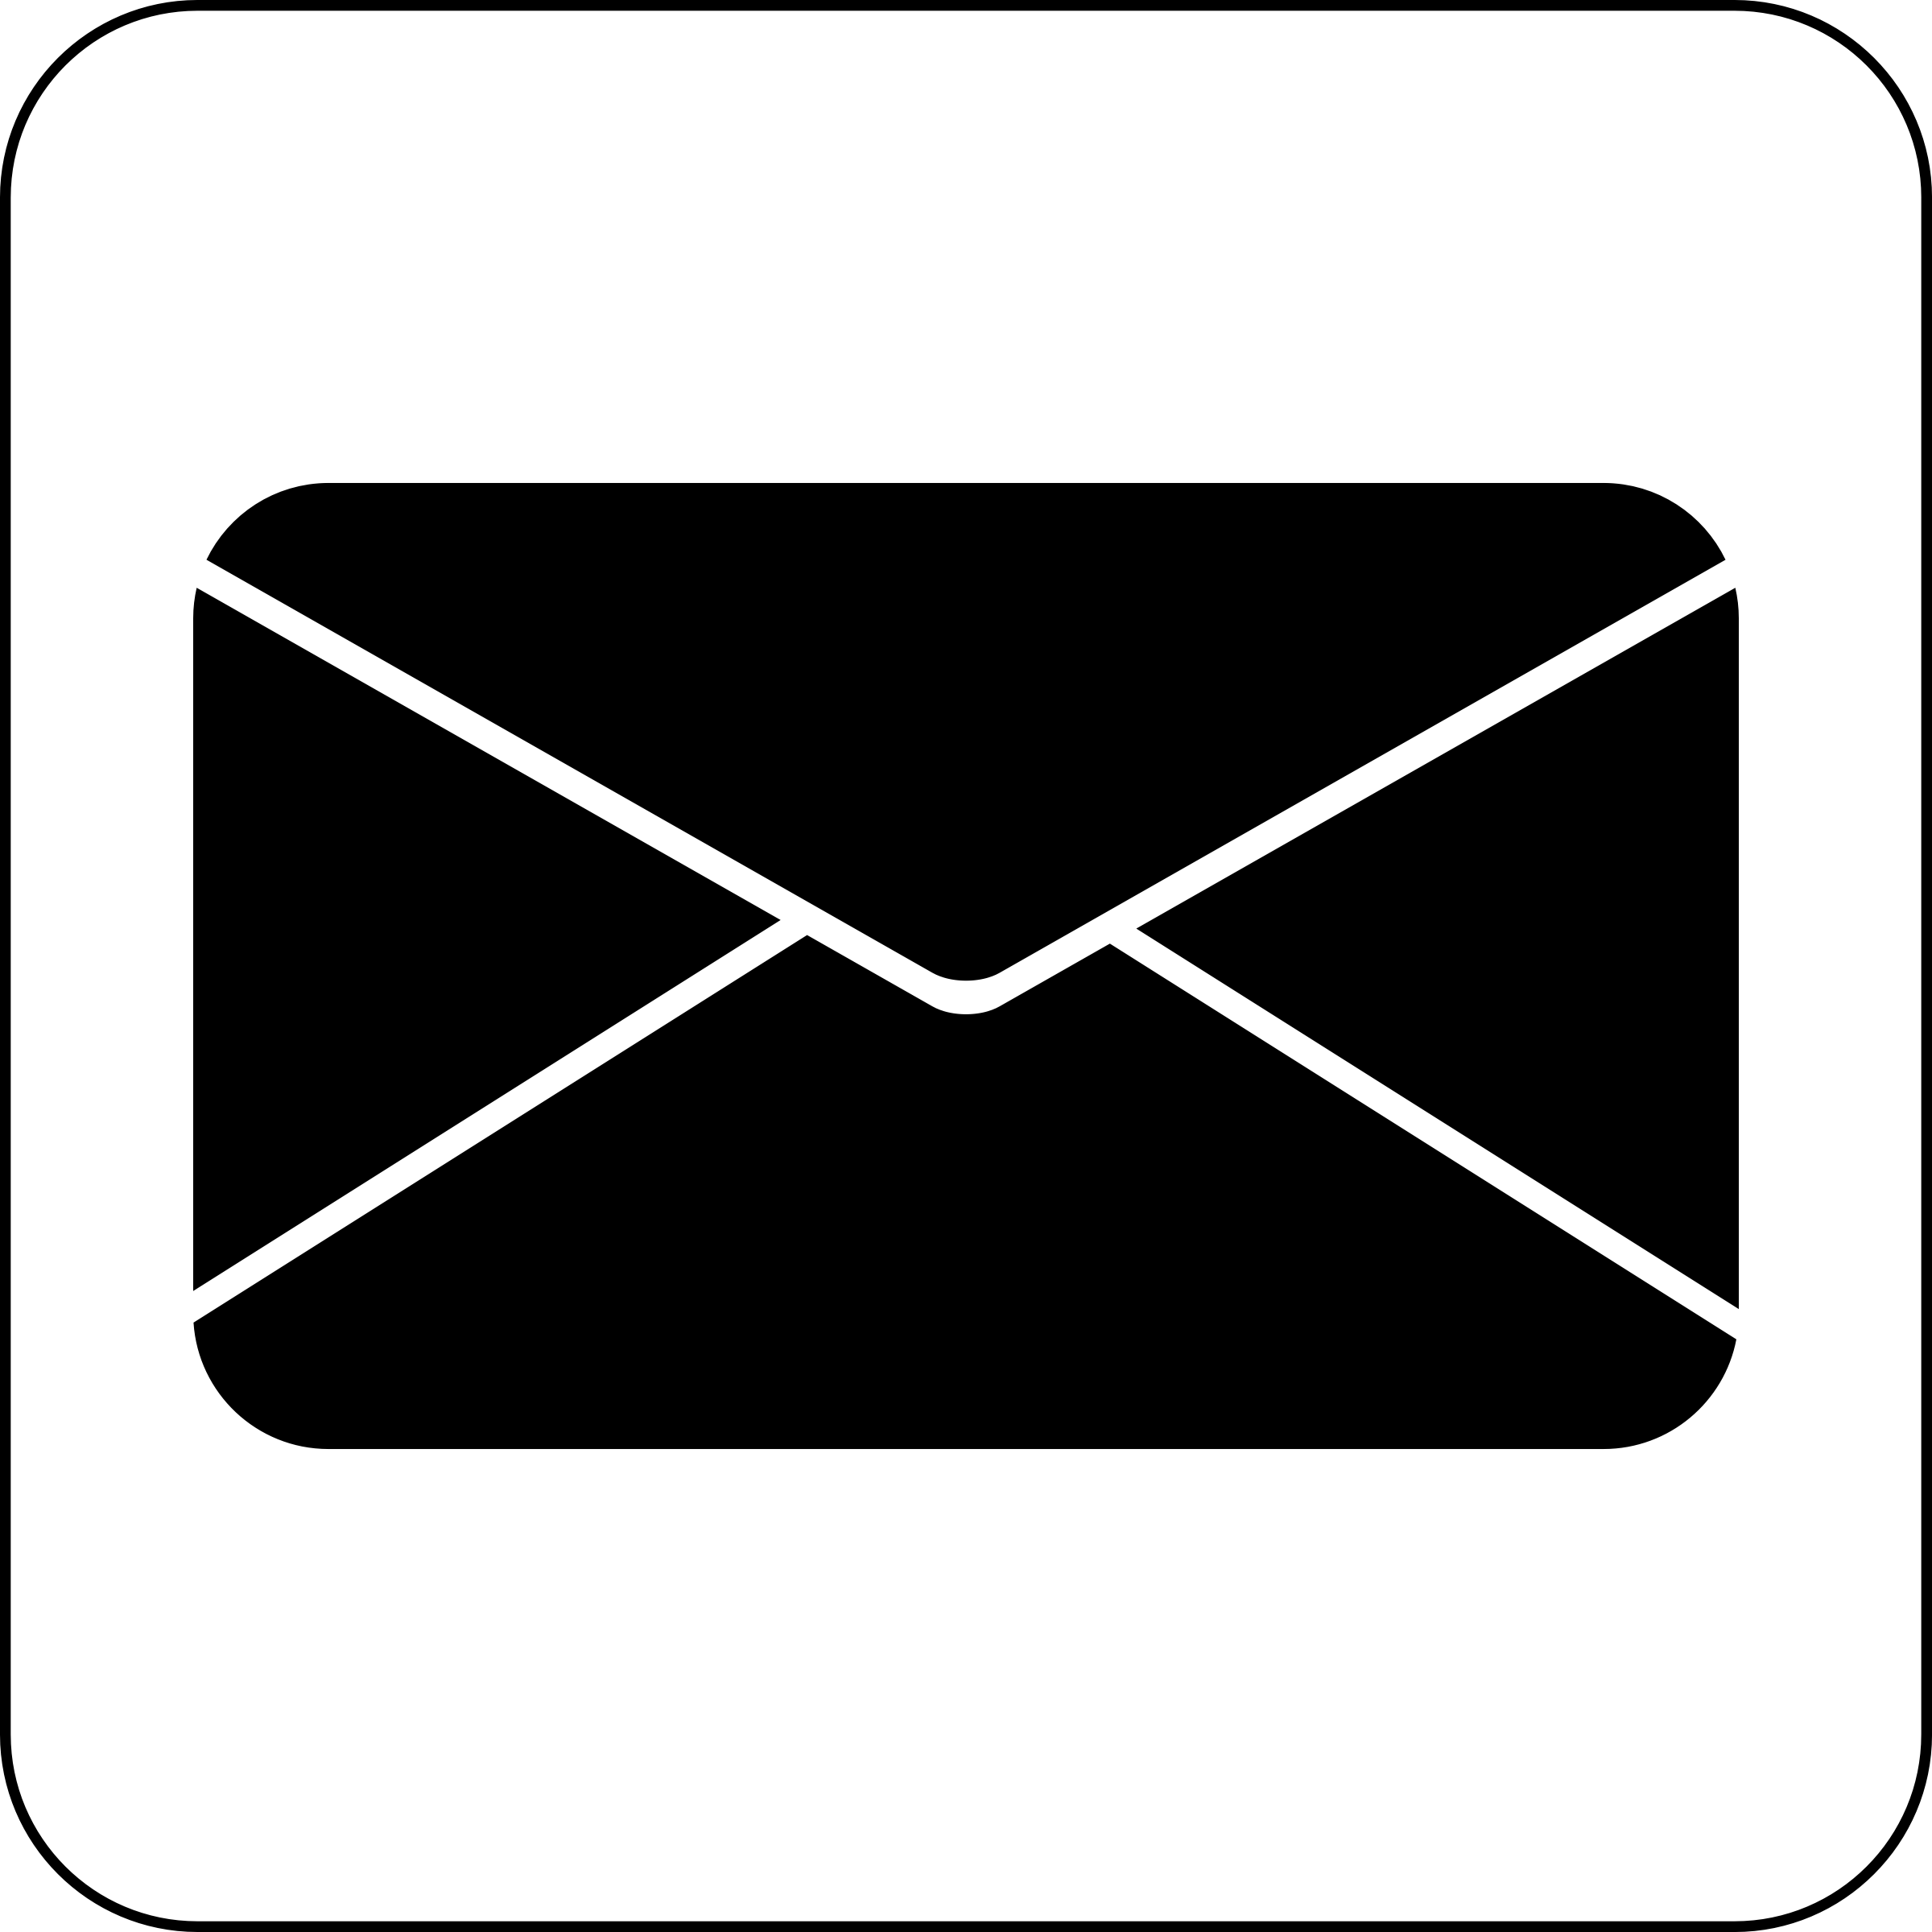 Whit clipart email Email Email symbol Clip Art